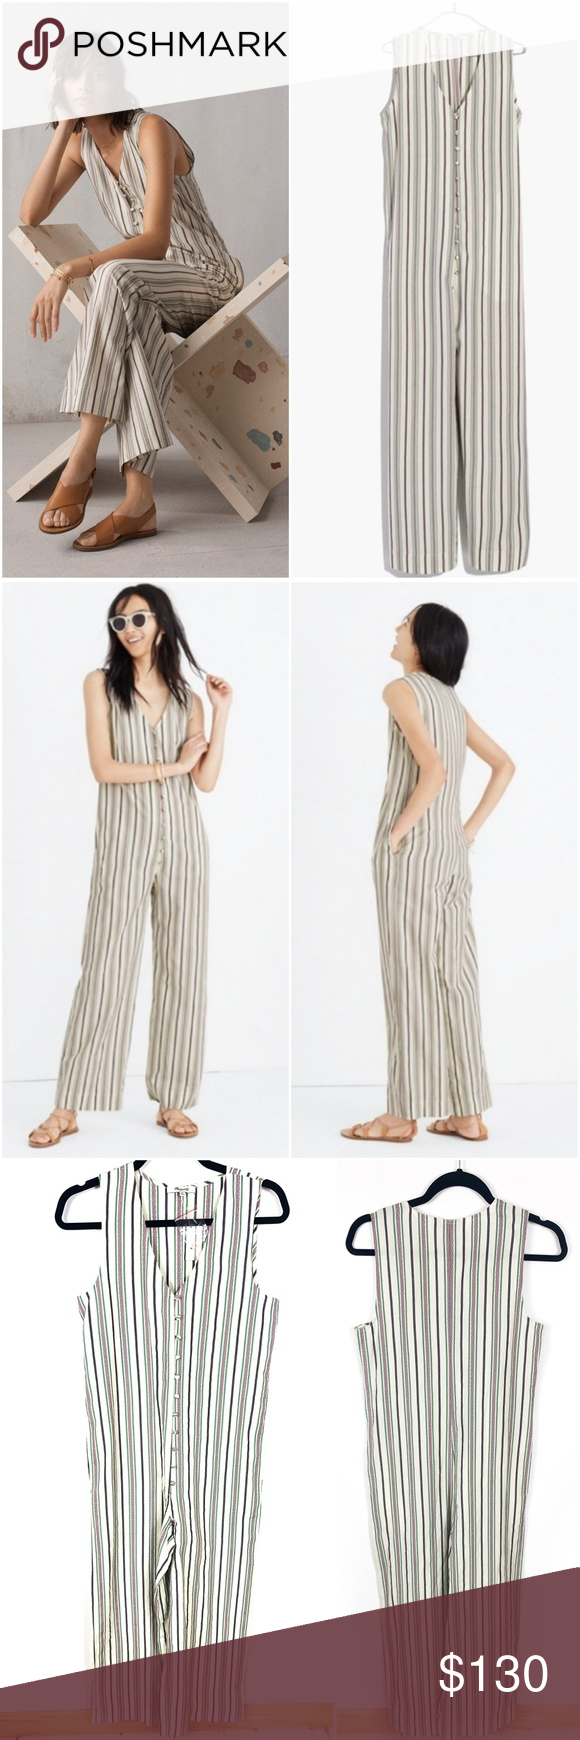 3e367959 NEW Madewell Green Striped Button Down Jumpsuit XS New with Tags NEW  Madewell XS Green Striped